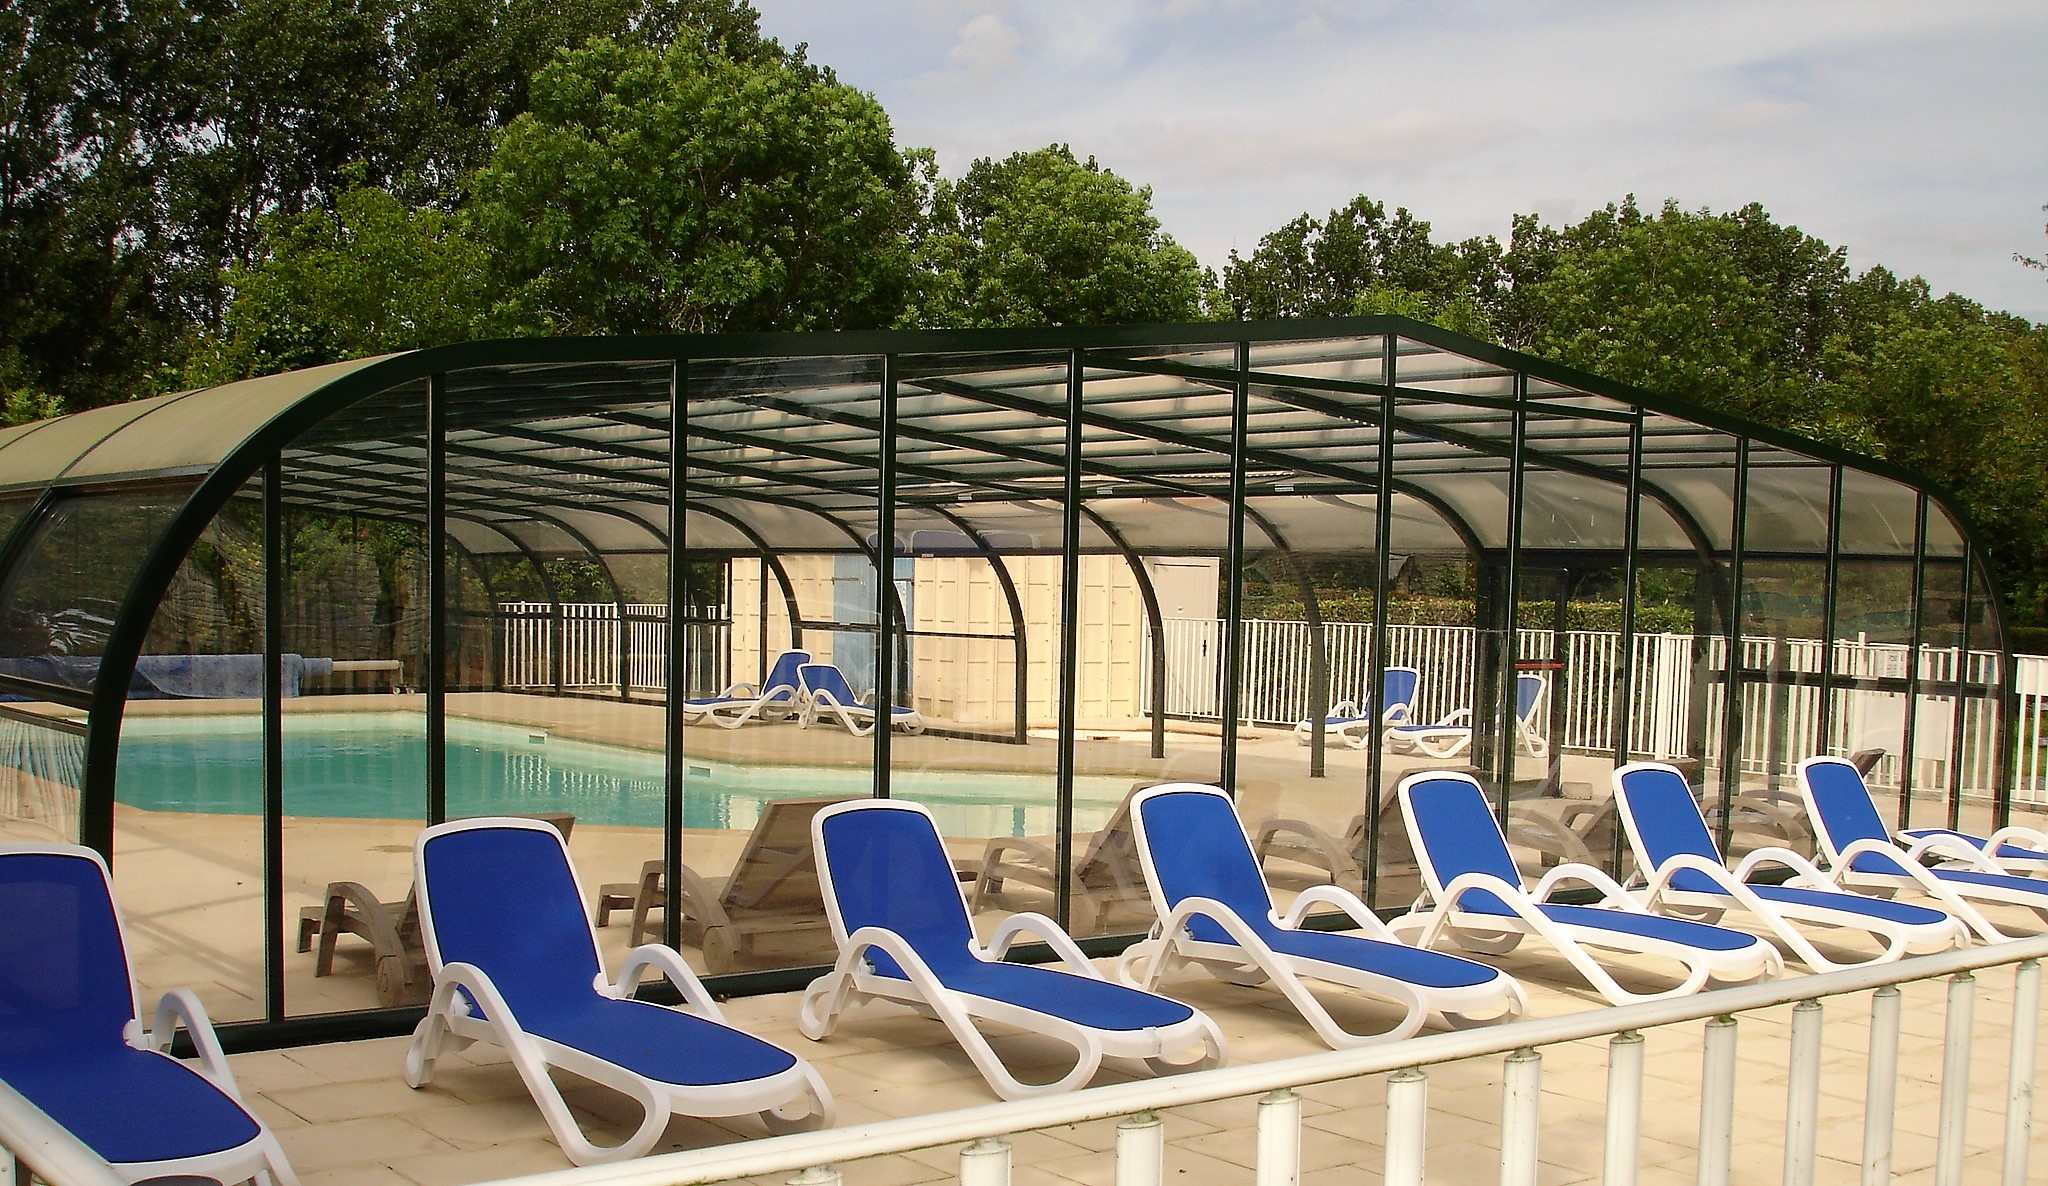 Camping le septentrion brulon camp de tourisme Camping royan piscine couverte